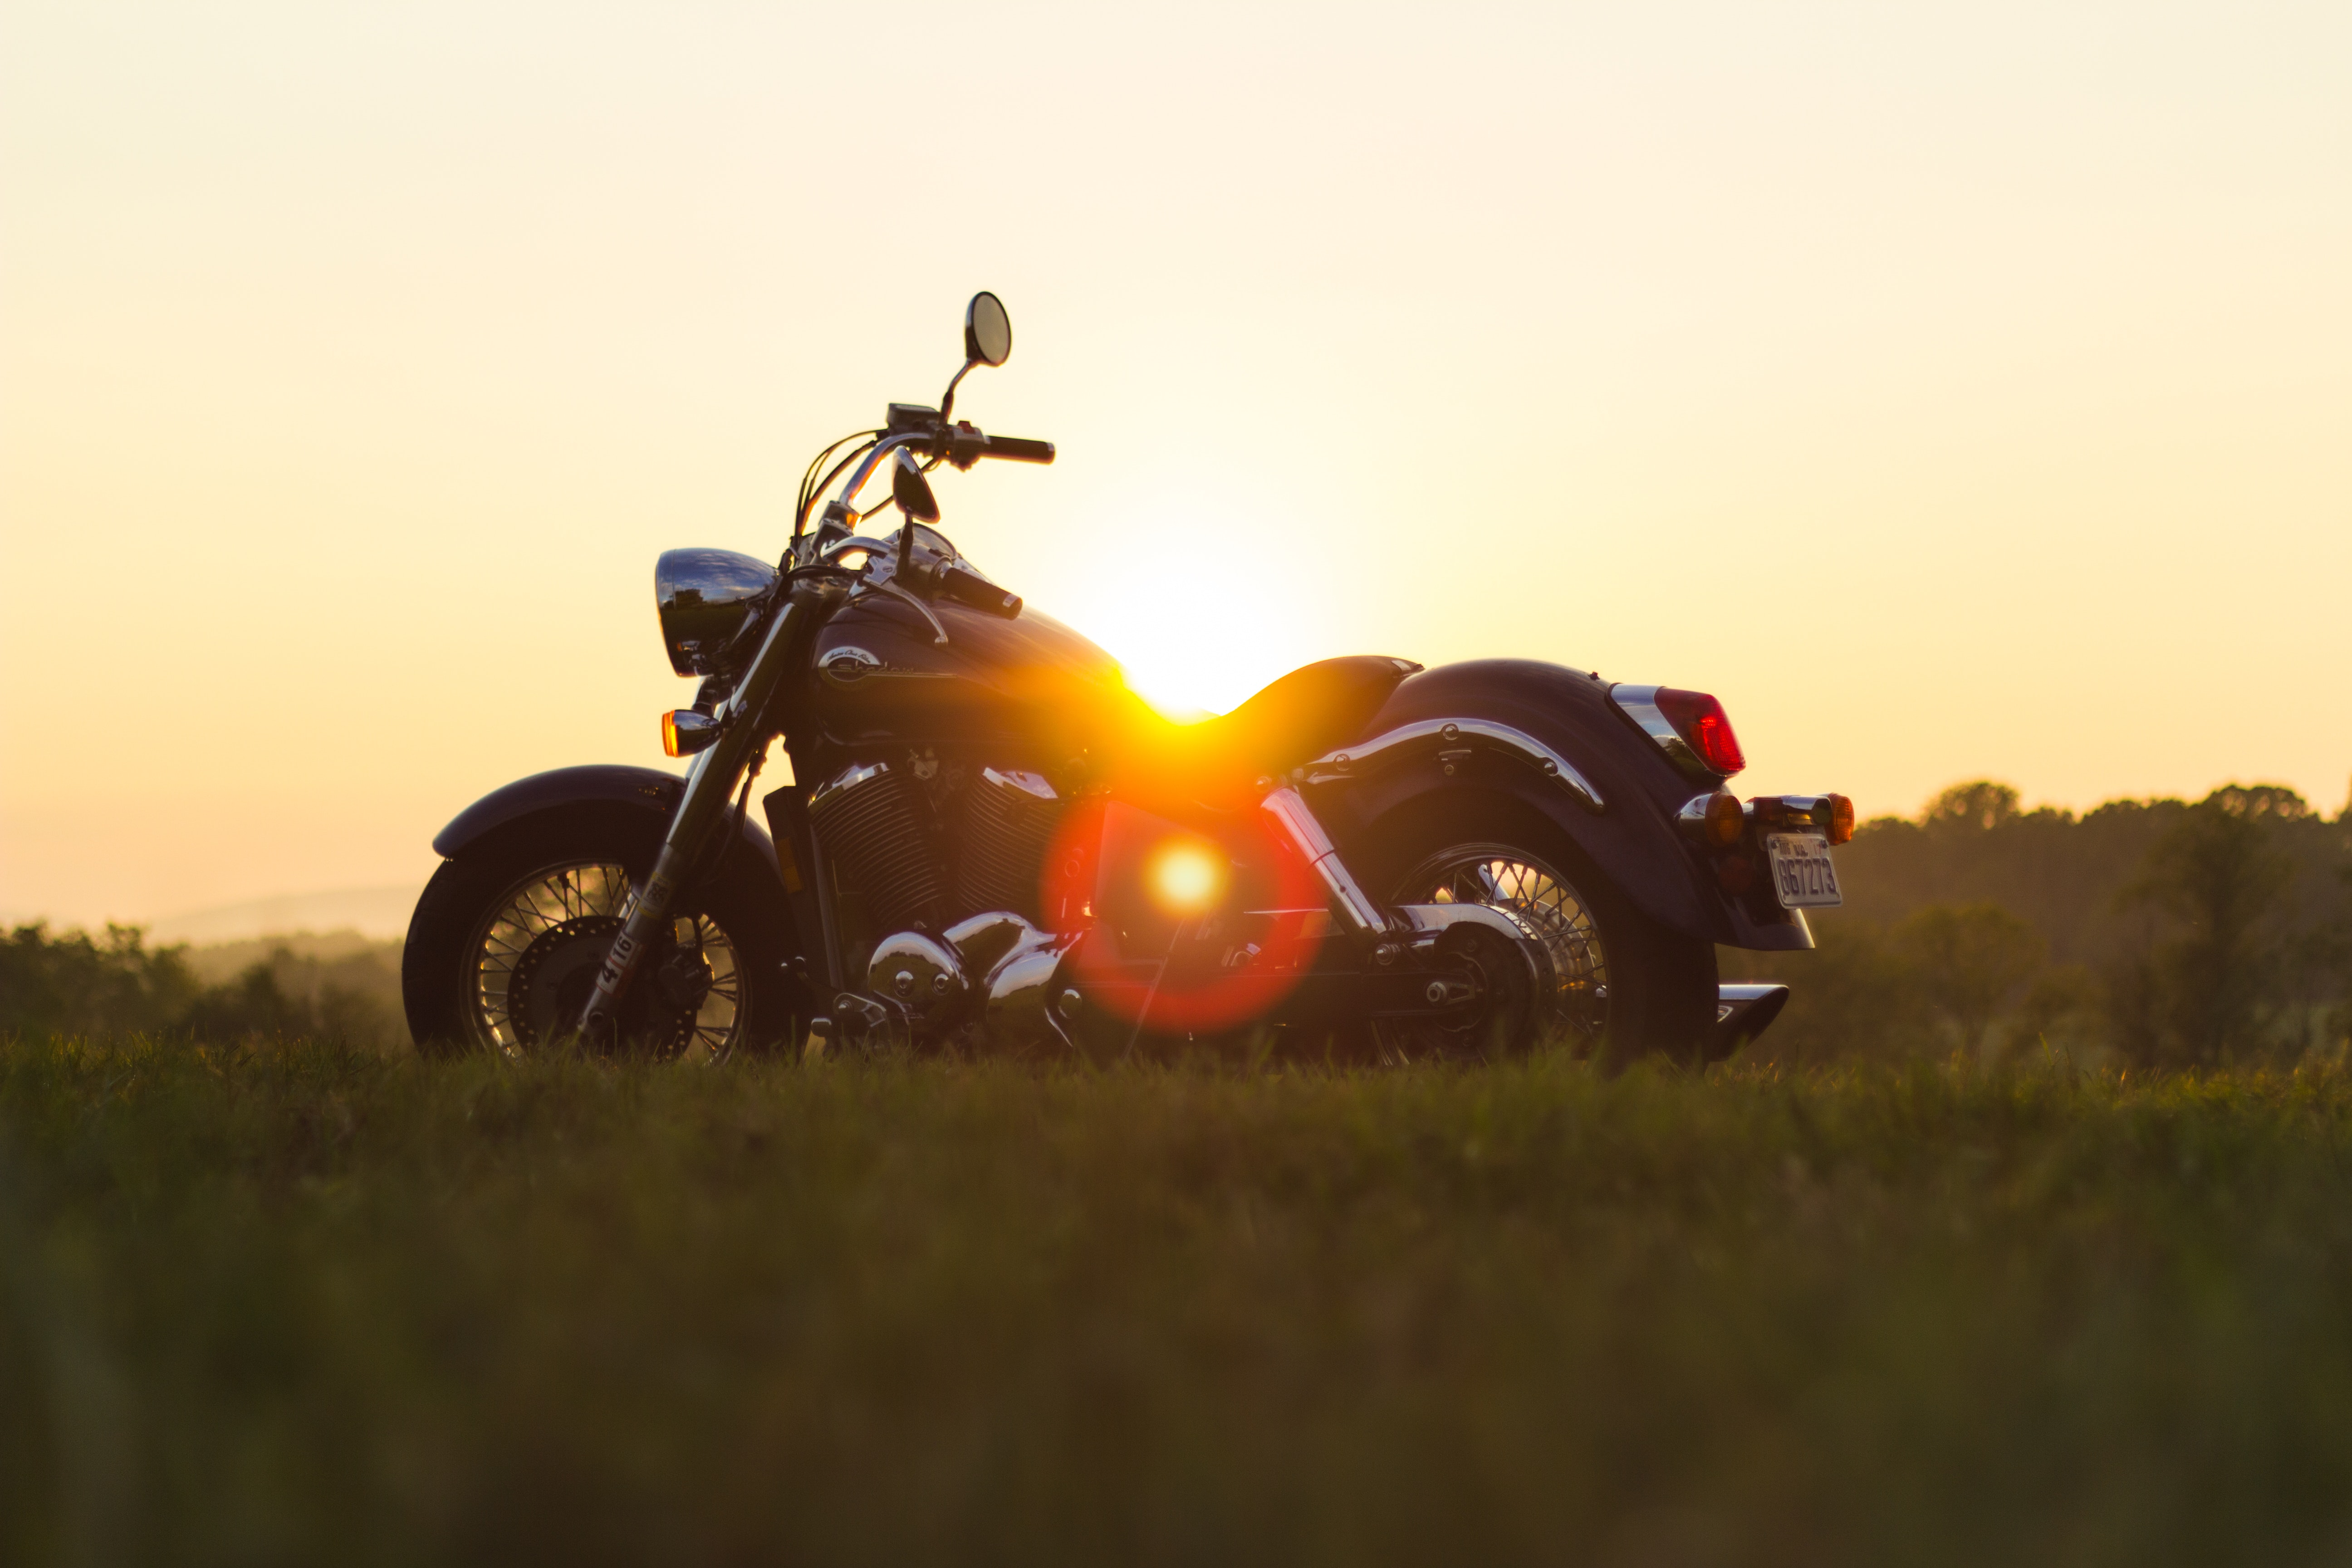 are free motorcycle  Free stock photo of motorbike, motorcycle, roadtrip